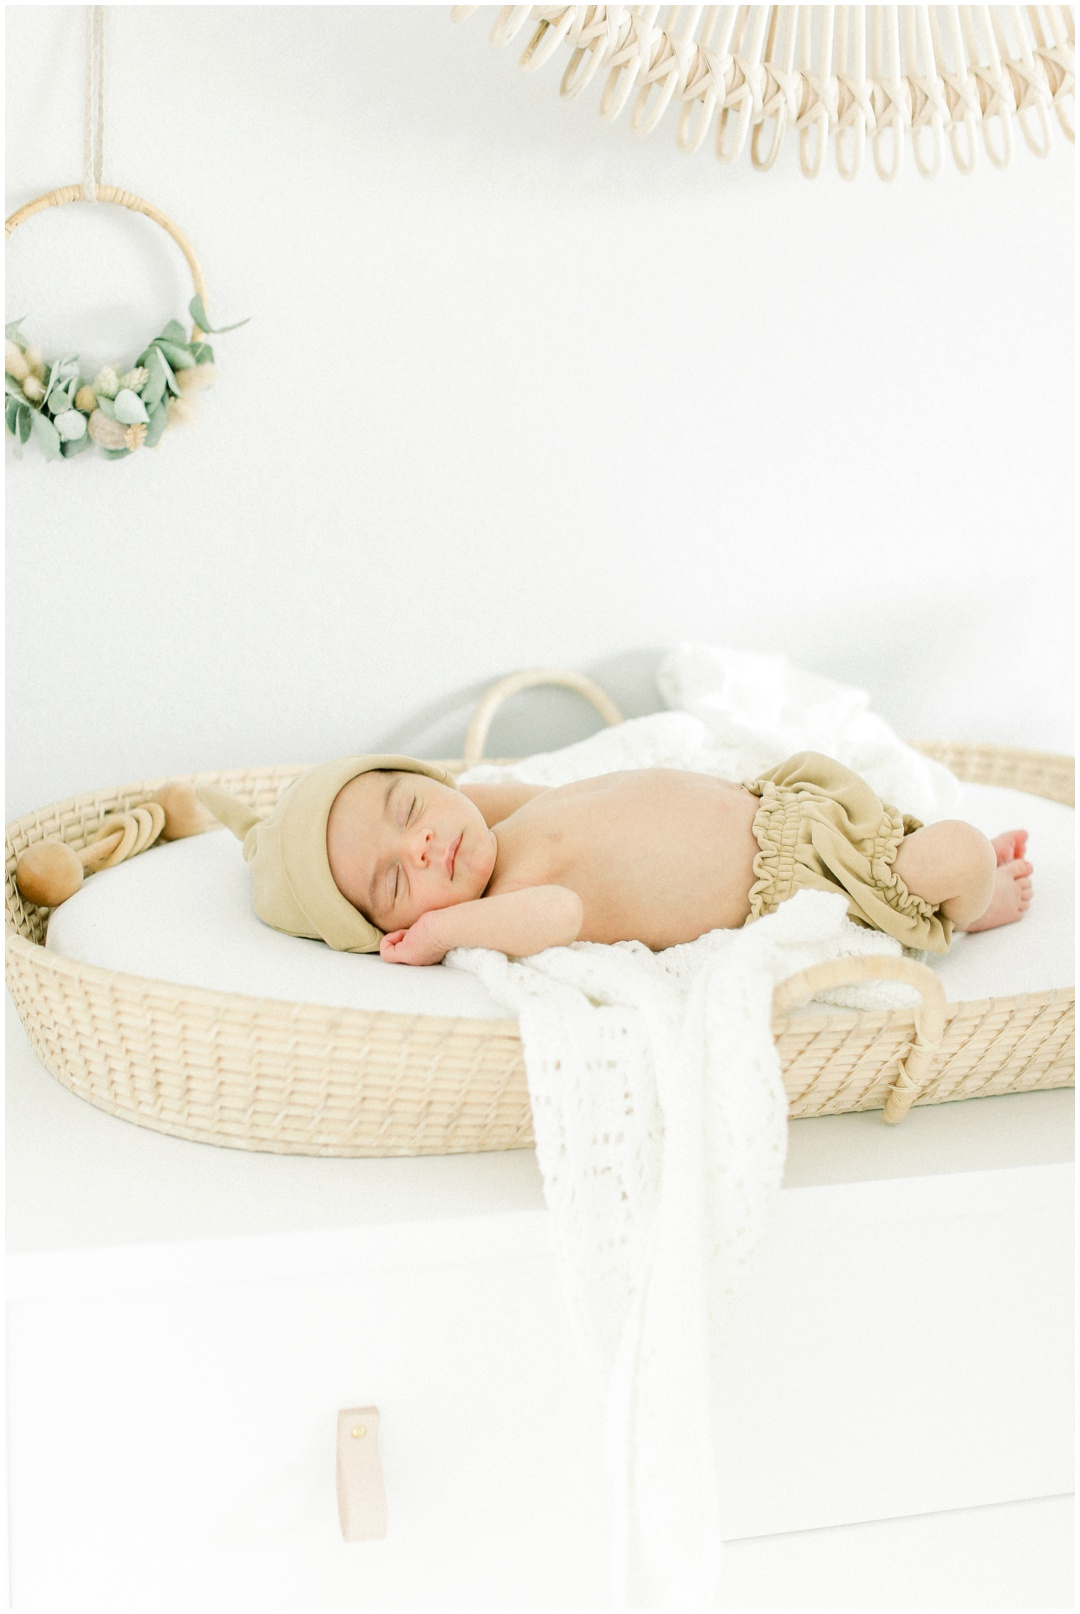 Newport_Beach_Newborn_Photographer_Newport_Beach_Maternity_Photographer_Orange_County_Family_Photographer_Cori_Kleckner_Photography_Huntington_Beach_Photographer_Family_OC_Newborn_Danielle_Char_Baum_Family_3065.jpg